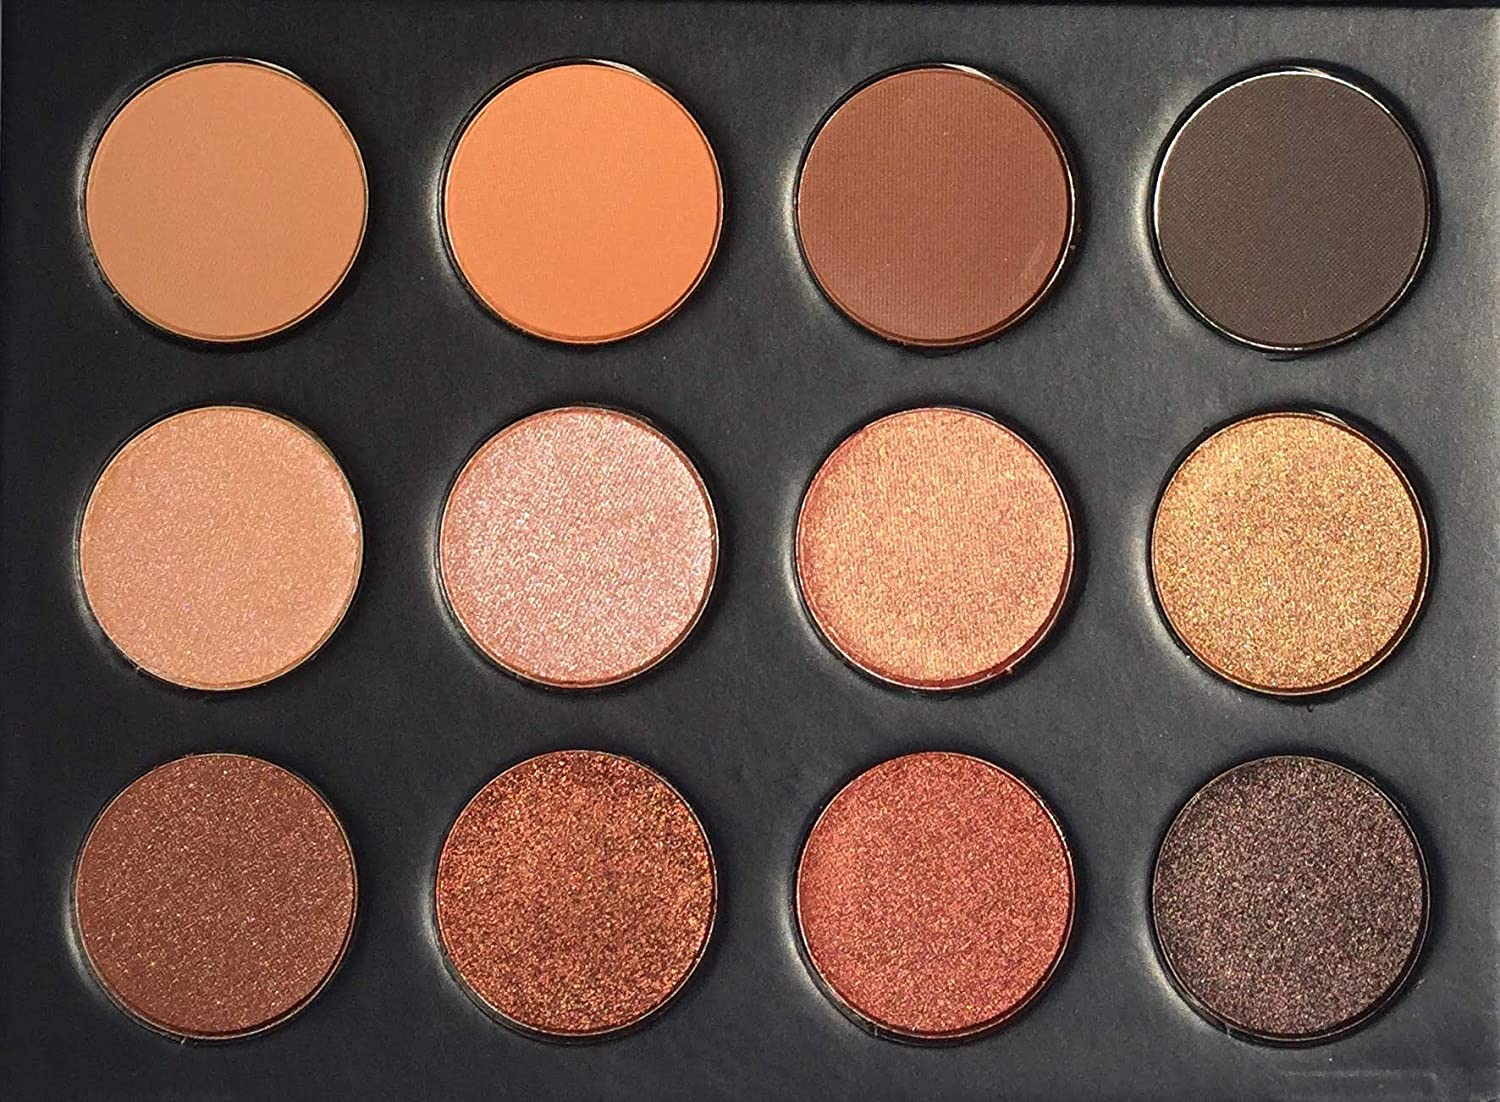 Koko Eyeshadow Pro Makeup Palette - Matte Max 67% OFF of fixed price 57% OFF Highly an 12 Pigmented